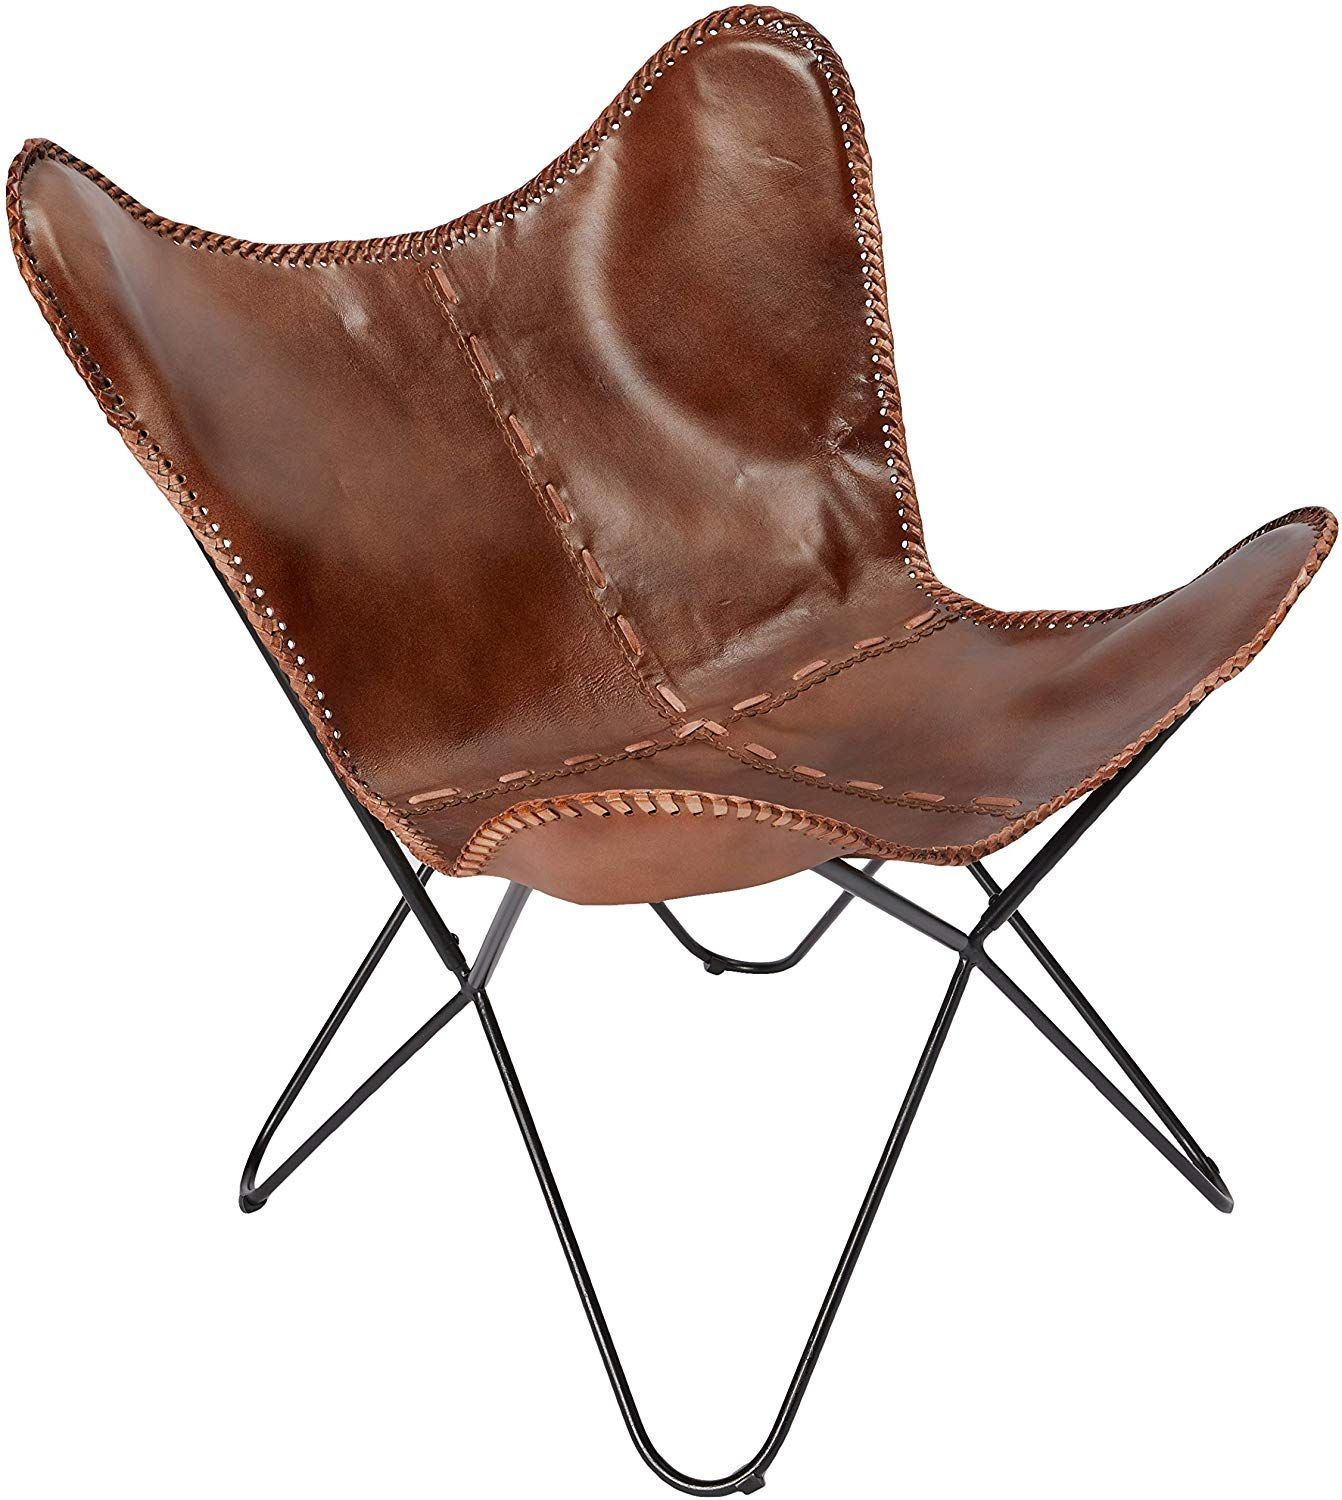 Leather Butterflay chair